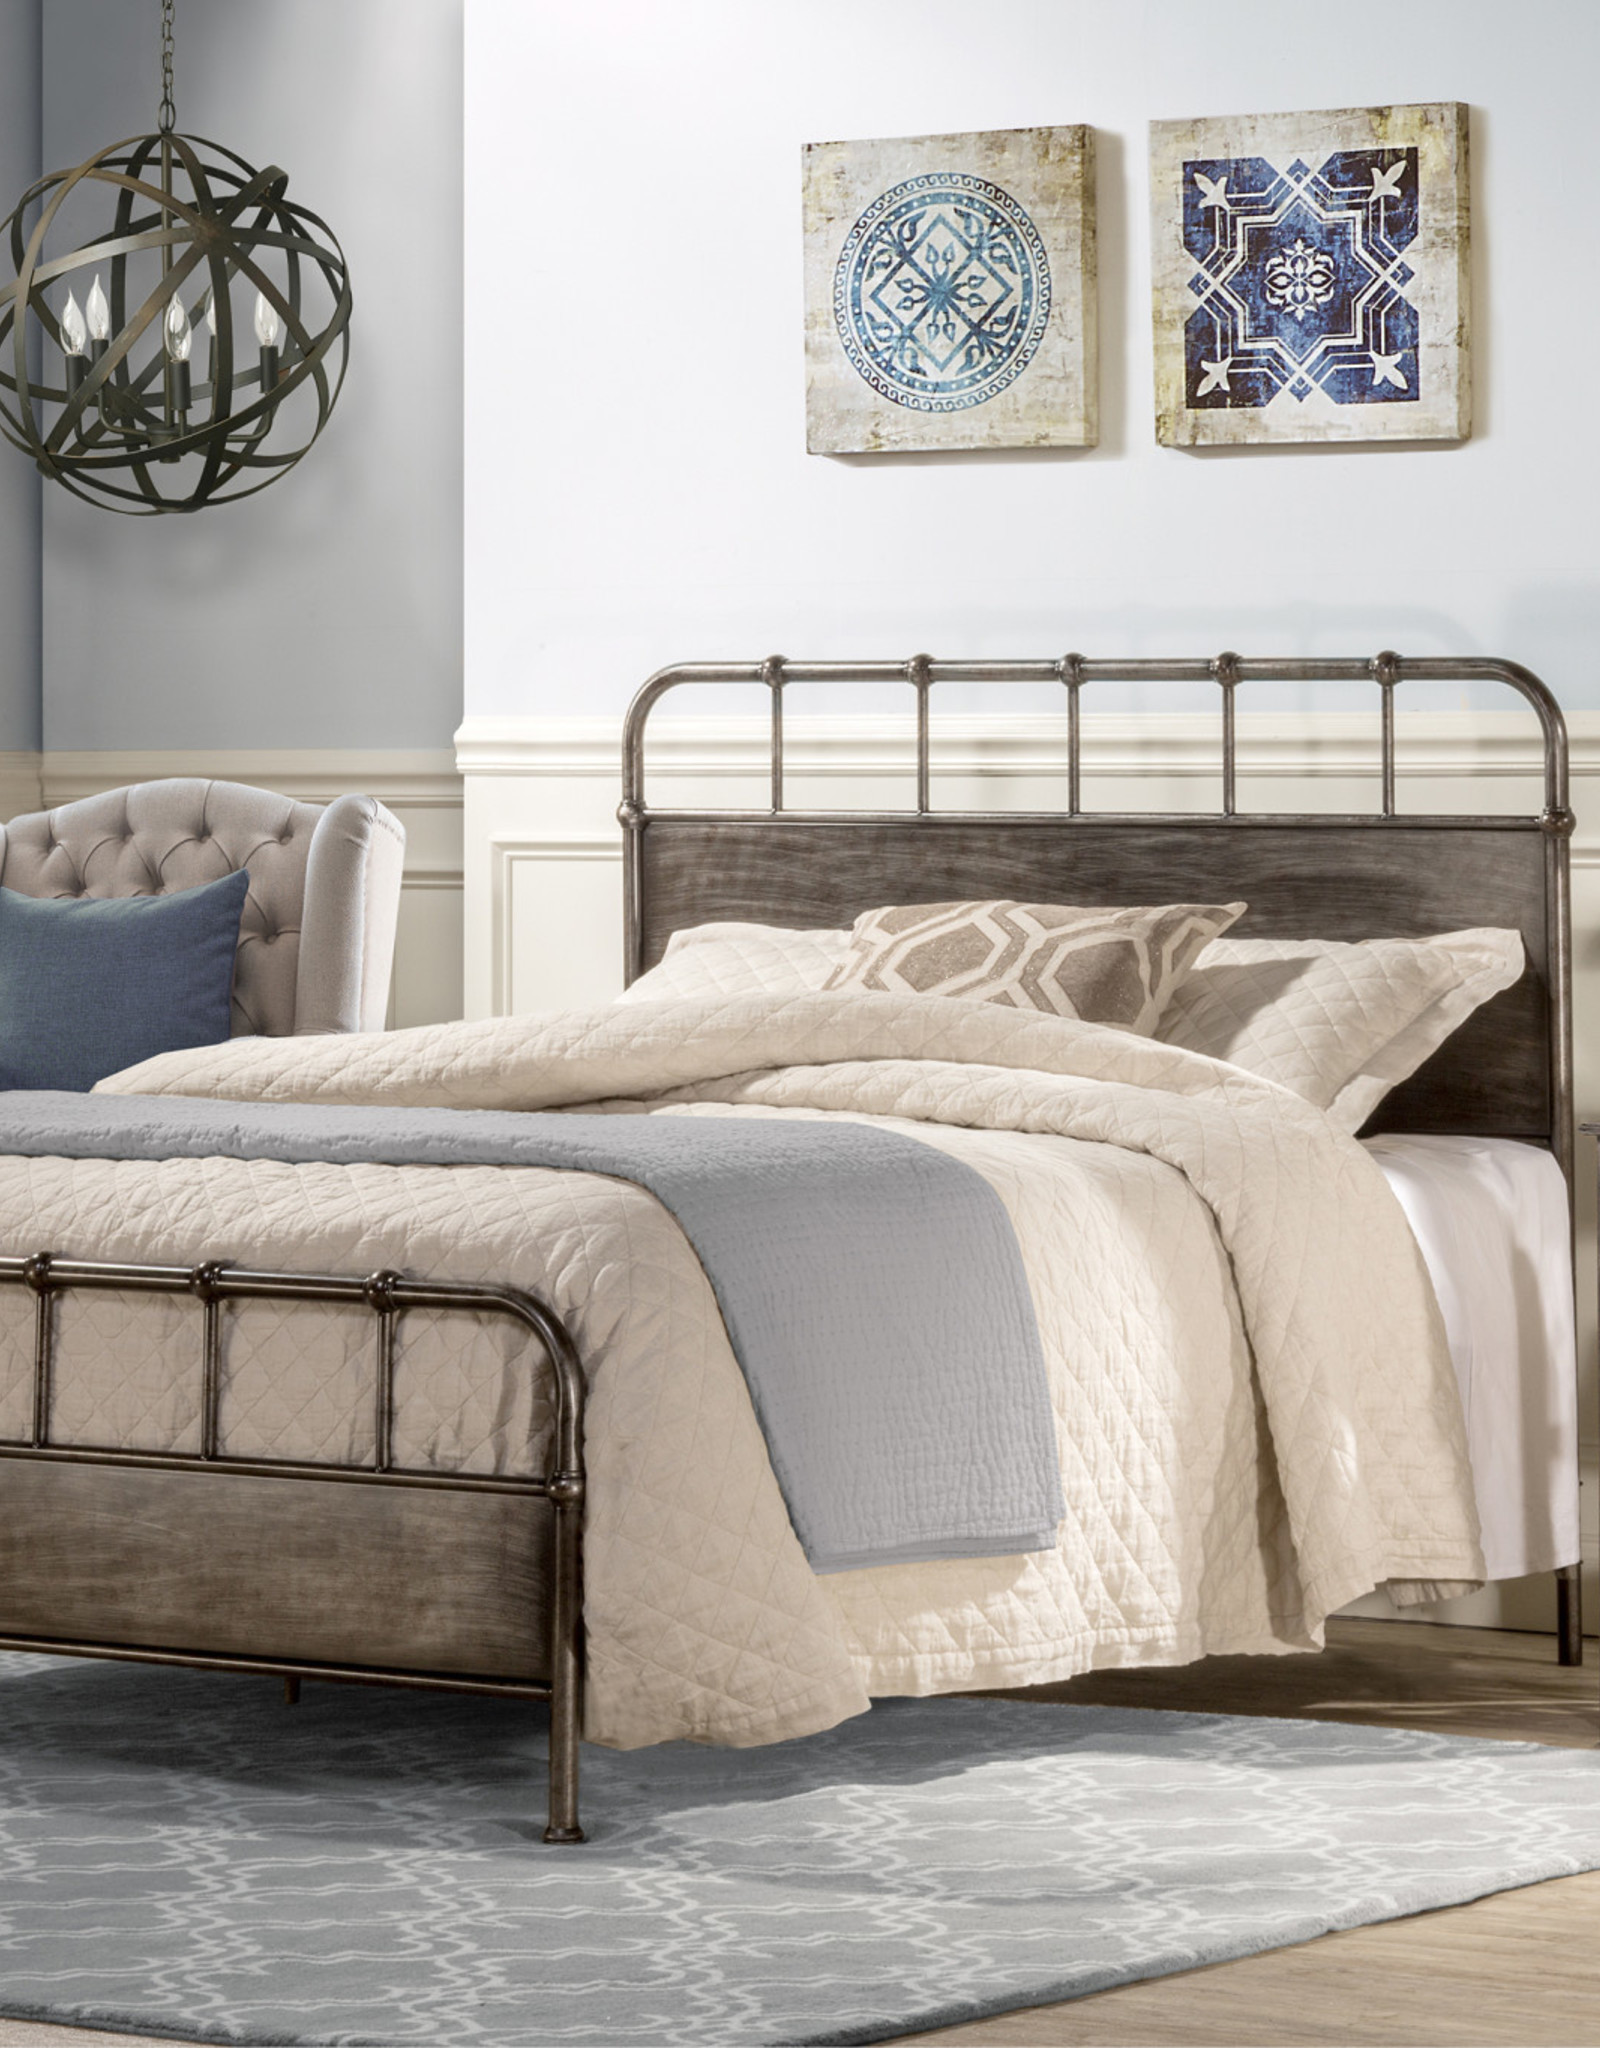 Grayson Bed (Includes headboard, footboard, and rails)